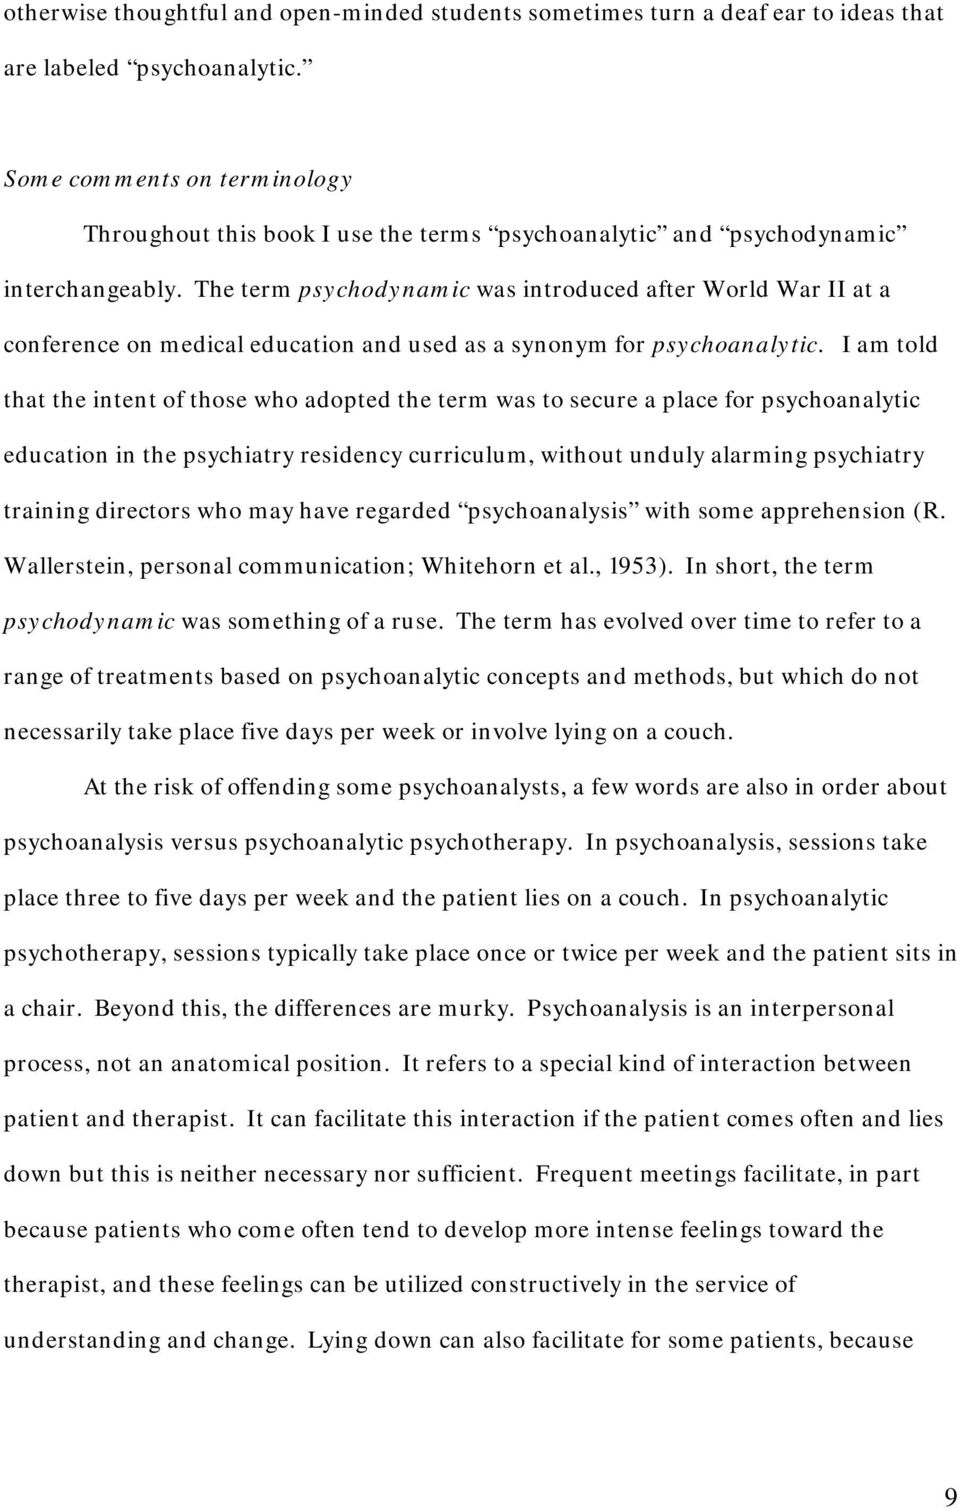 The term psychodynamic was introduced after World War II at a conference on medical education and used as a synonym for psychoanalytic.